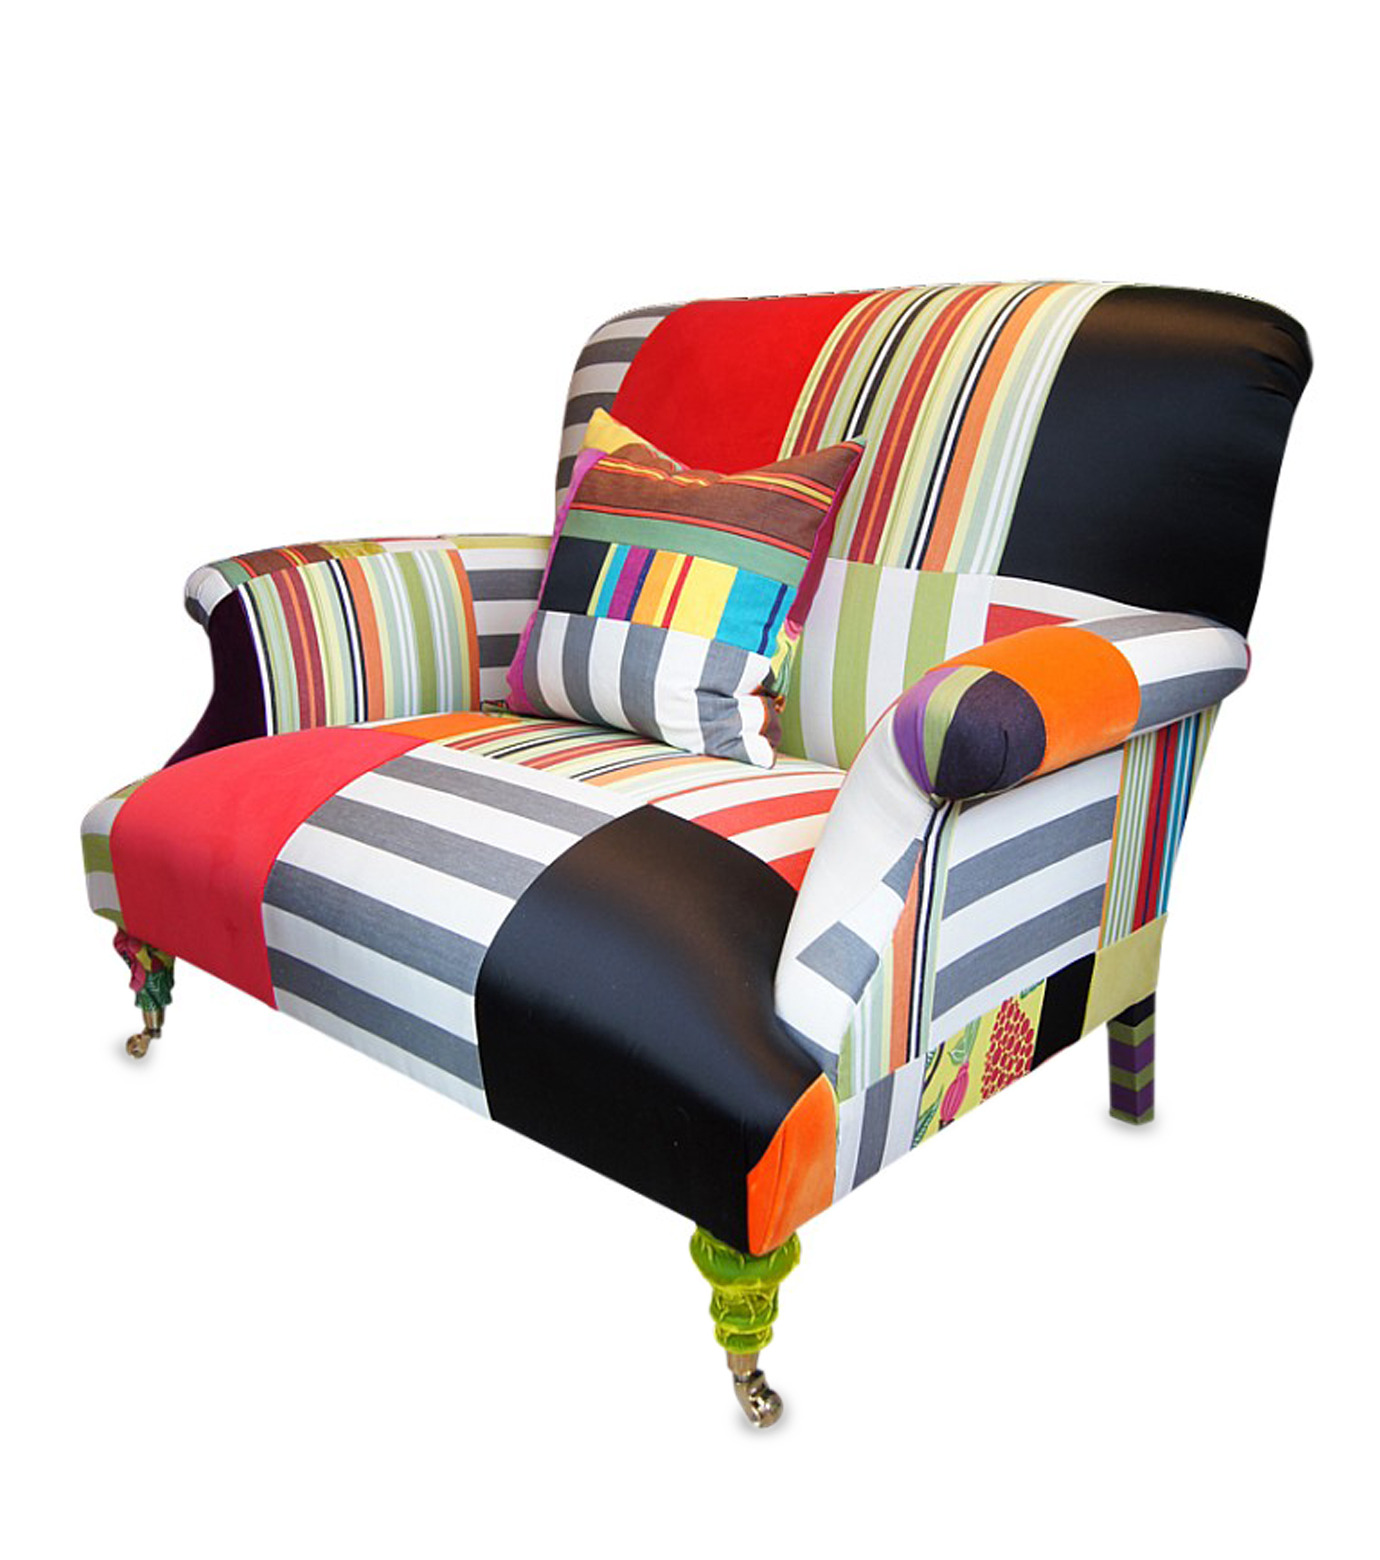 Squintlimited(スクイントリミテッド)のBloomsbury man and dog Armchair-NONE-5-0 拡大詳細画像1